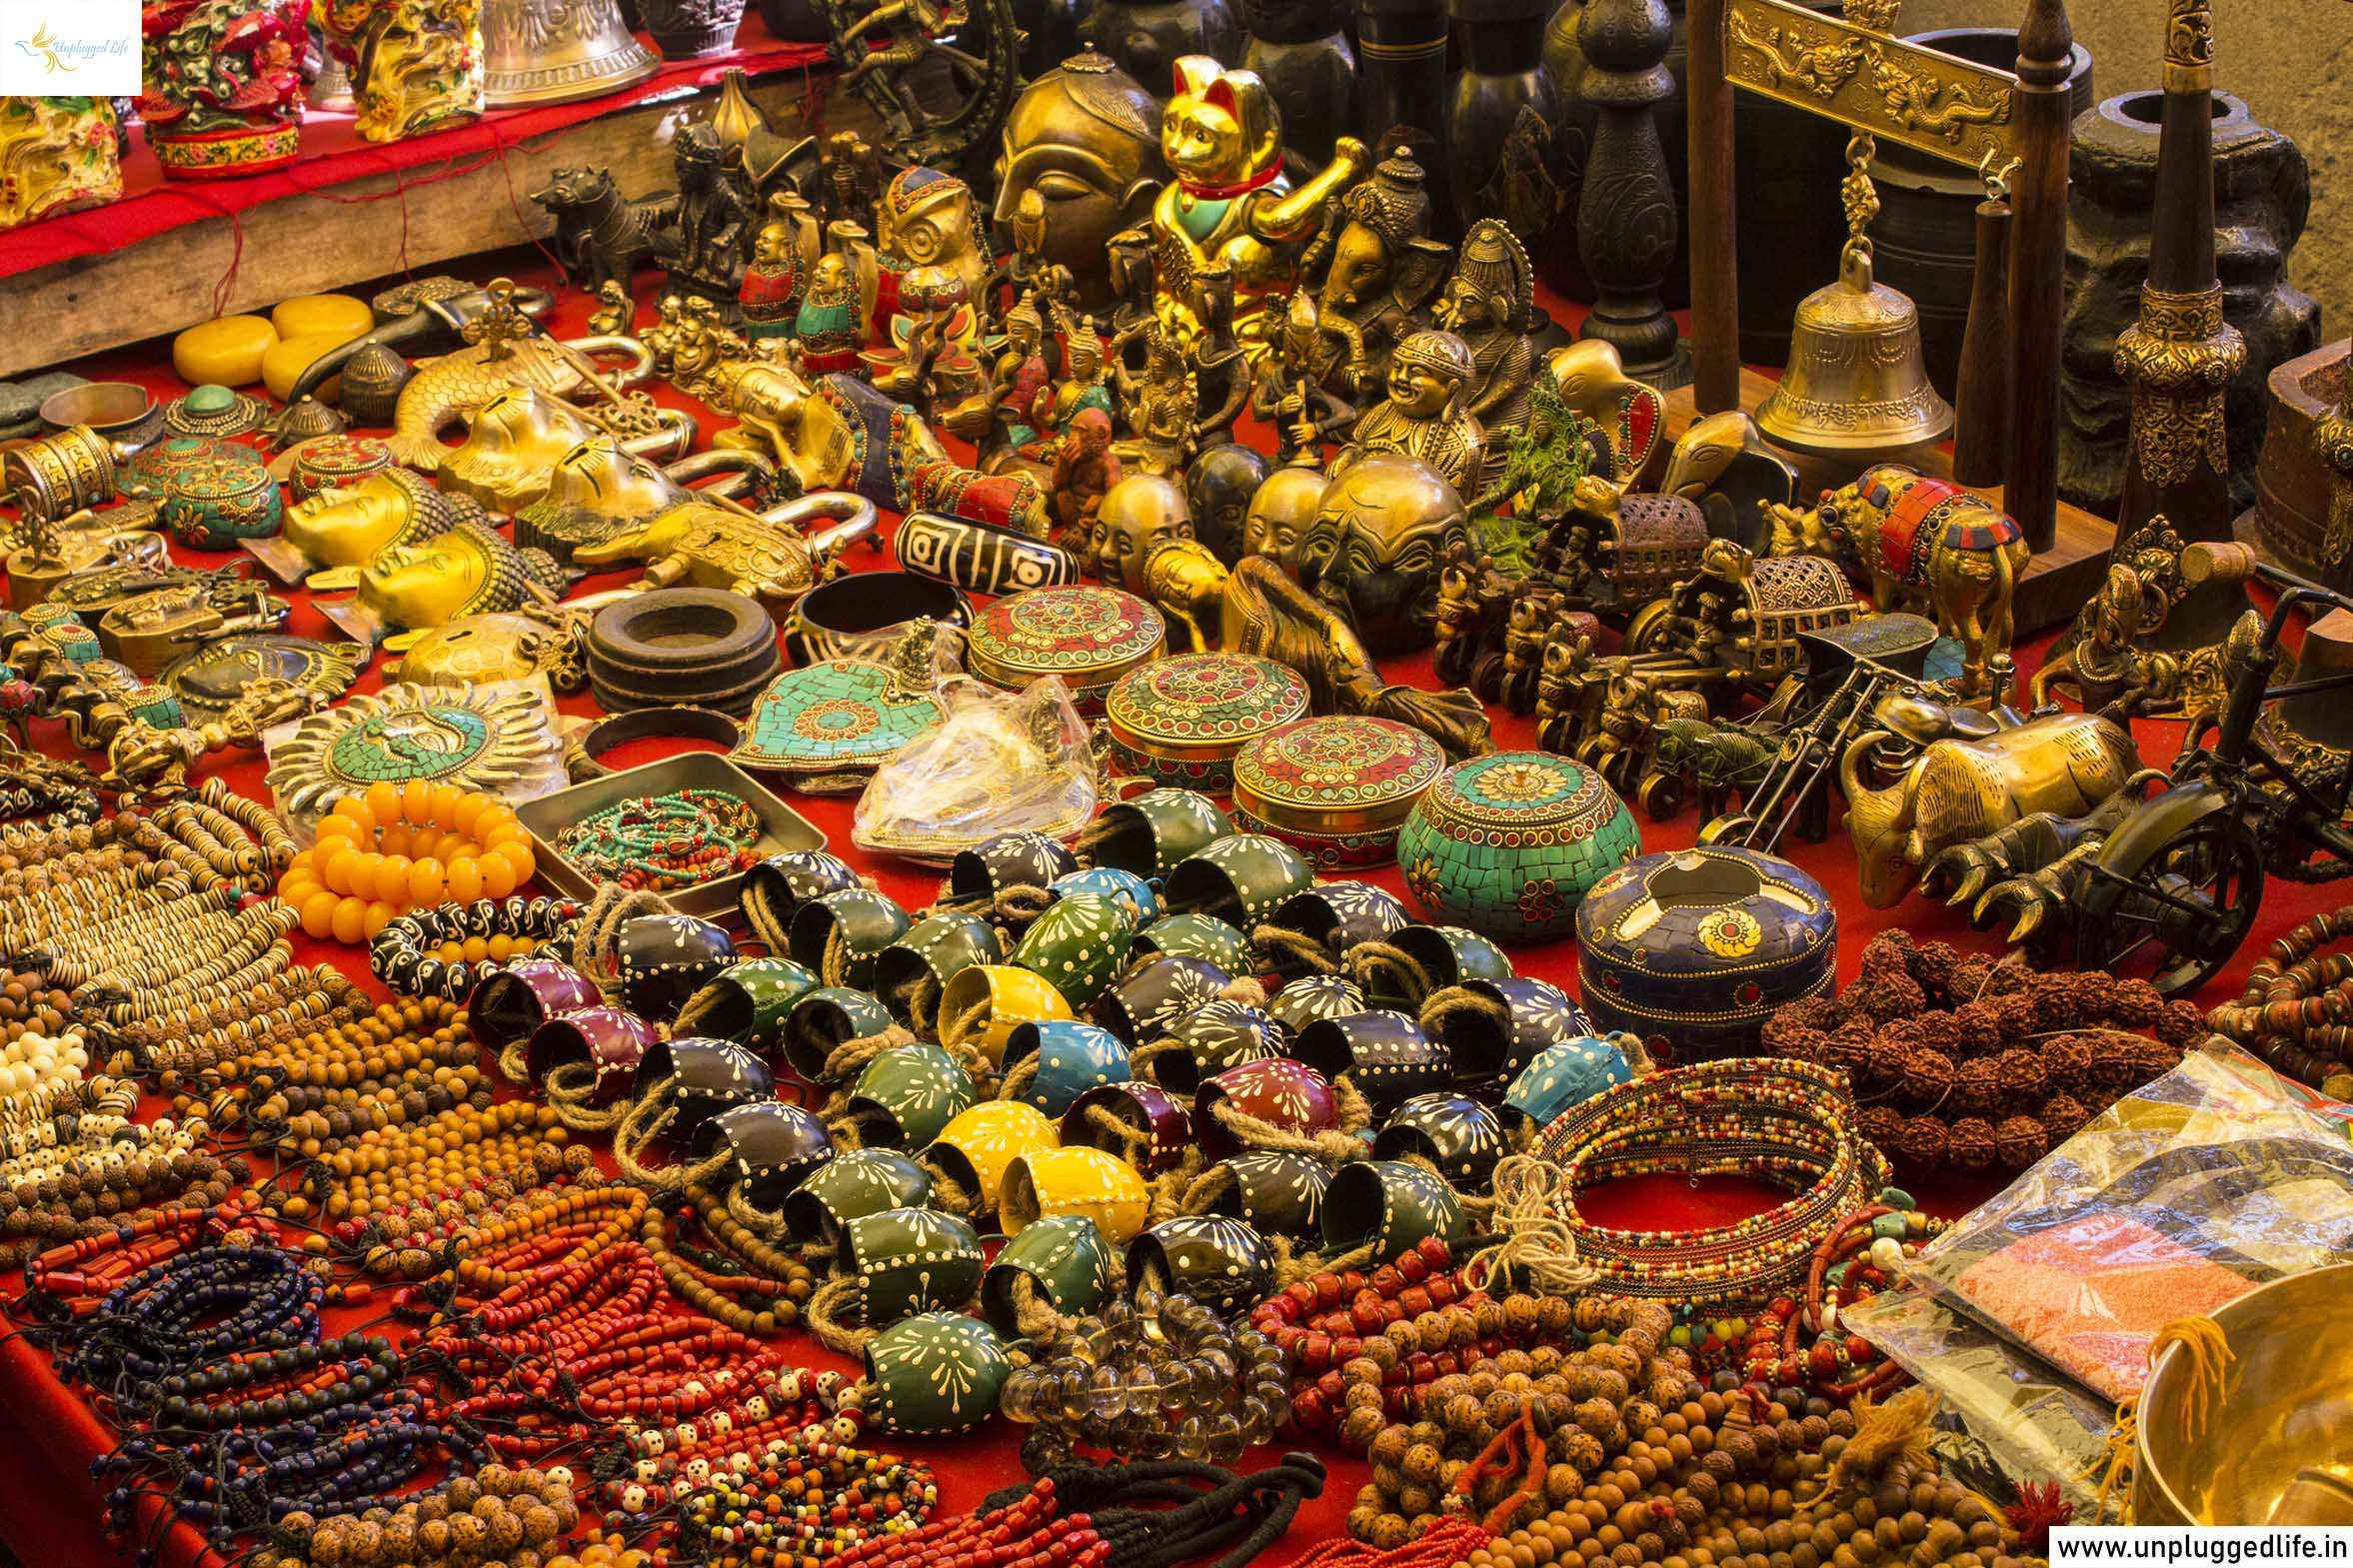 Souvenirs in Ladakh, Souvenir Shop in Leh Ladakh, Shop Souvenirs in Leh Ladakh, Shopping Places in Ladakh, Shopping in Leh, Souvenir Shop in Leh, Souvenir Shopping in Leh, Shopping Tour, Ladakh, Leh Market, Top Places in Ladakh, Sightseeing in Leh-Ladakh, Unplugged Life, Himalayas